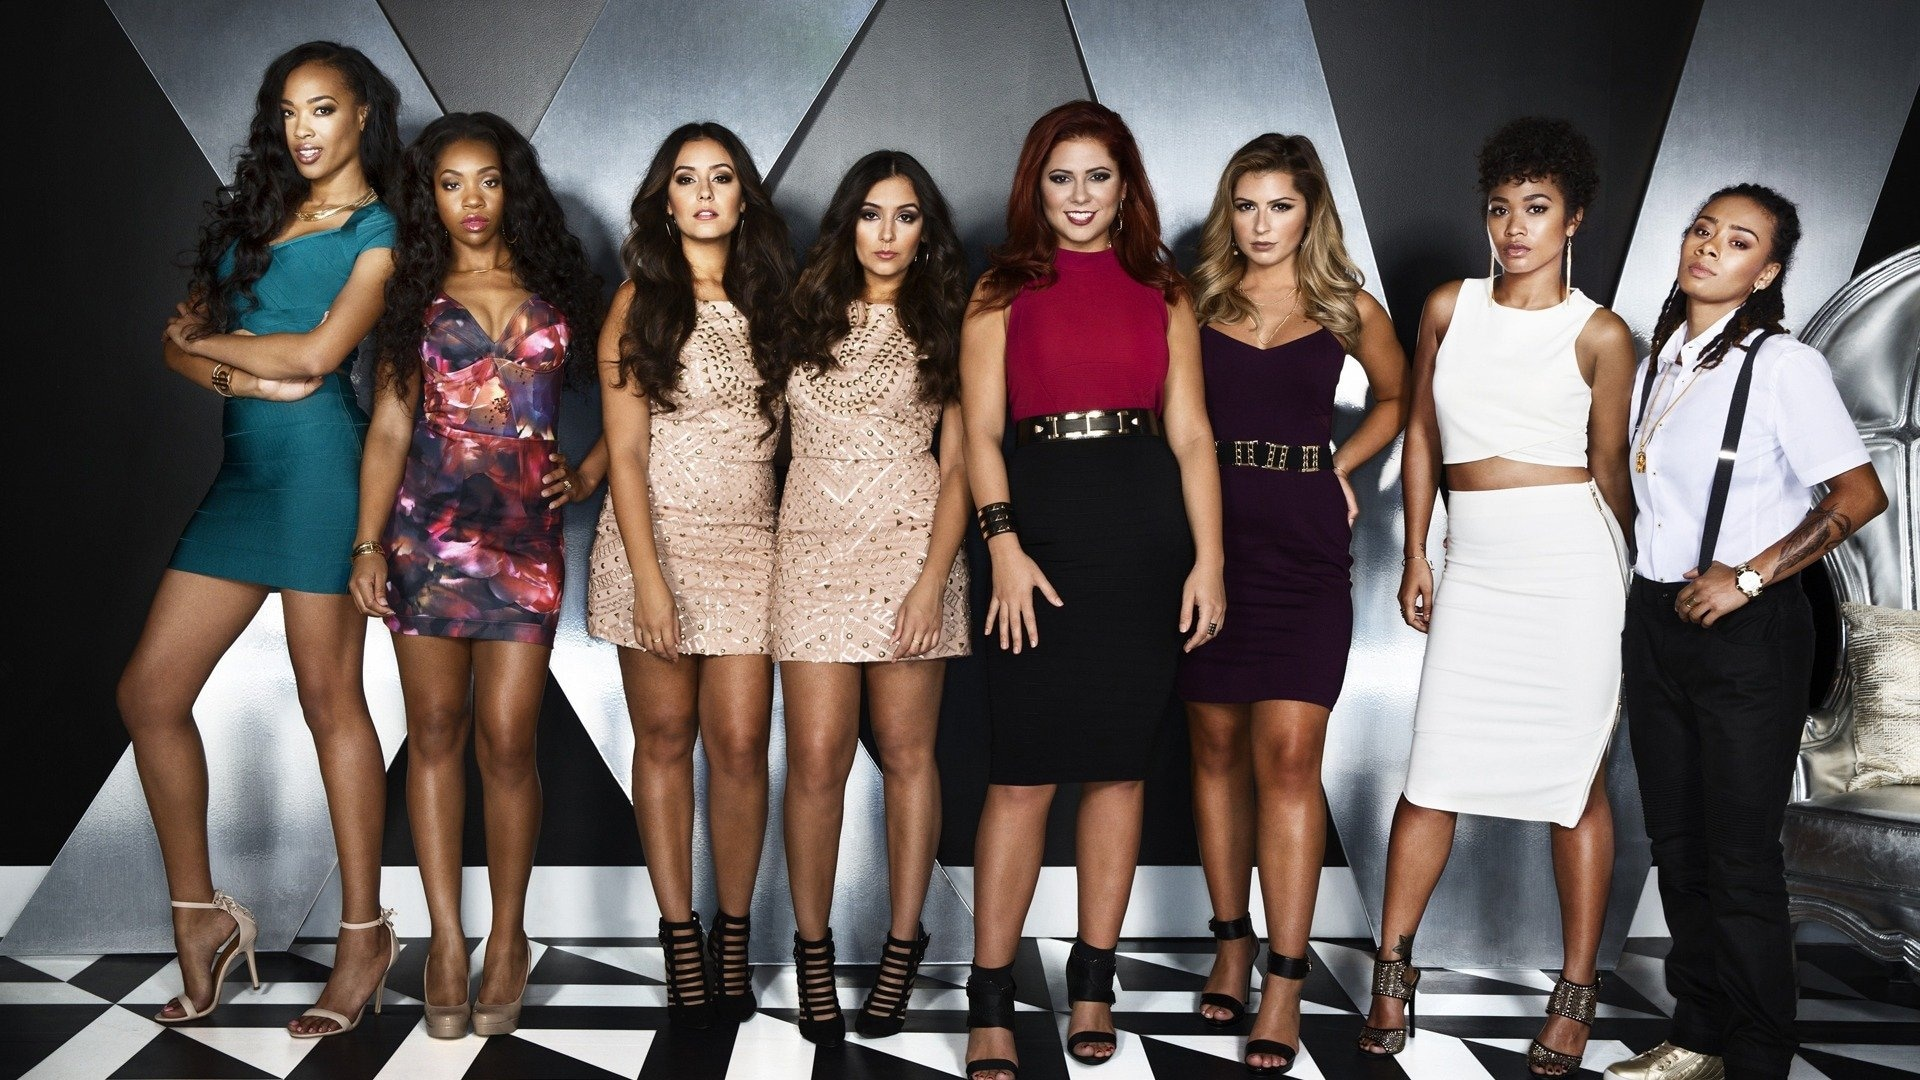 Watch Bad Girls Club: Twisted Sisters Online | Peacock